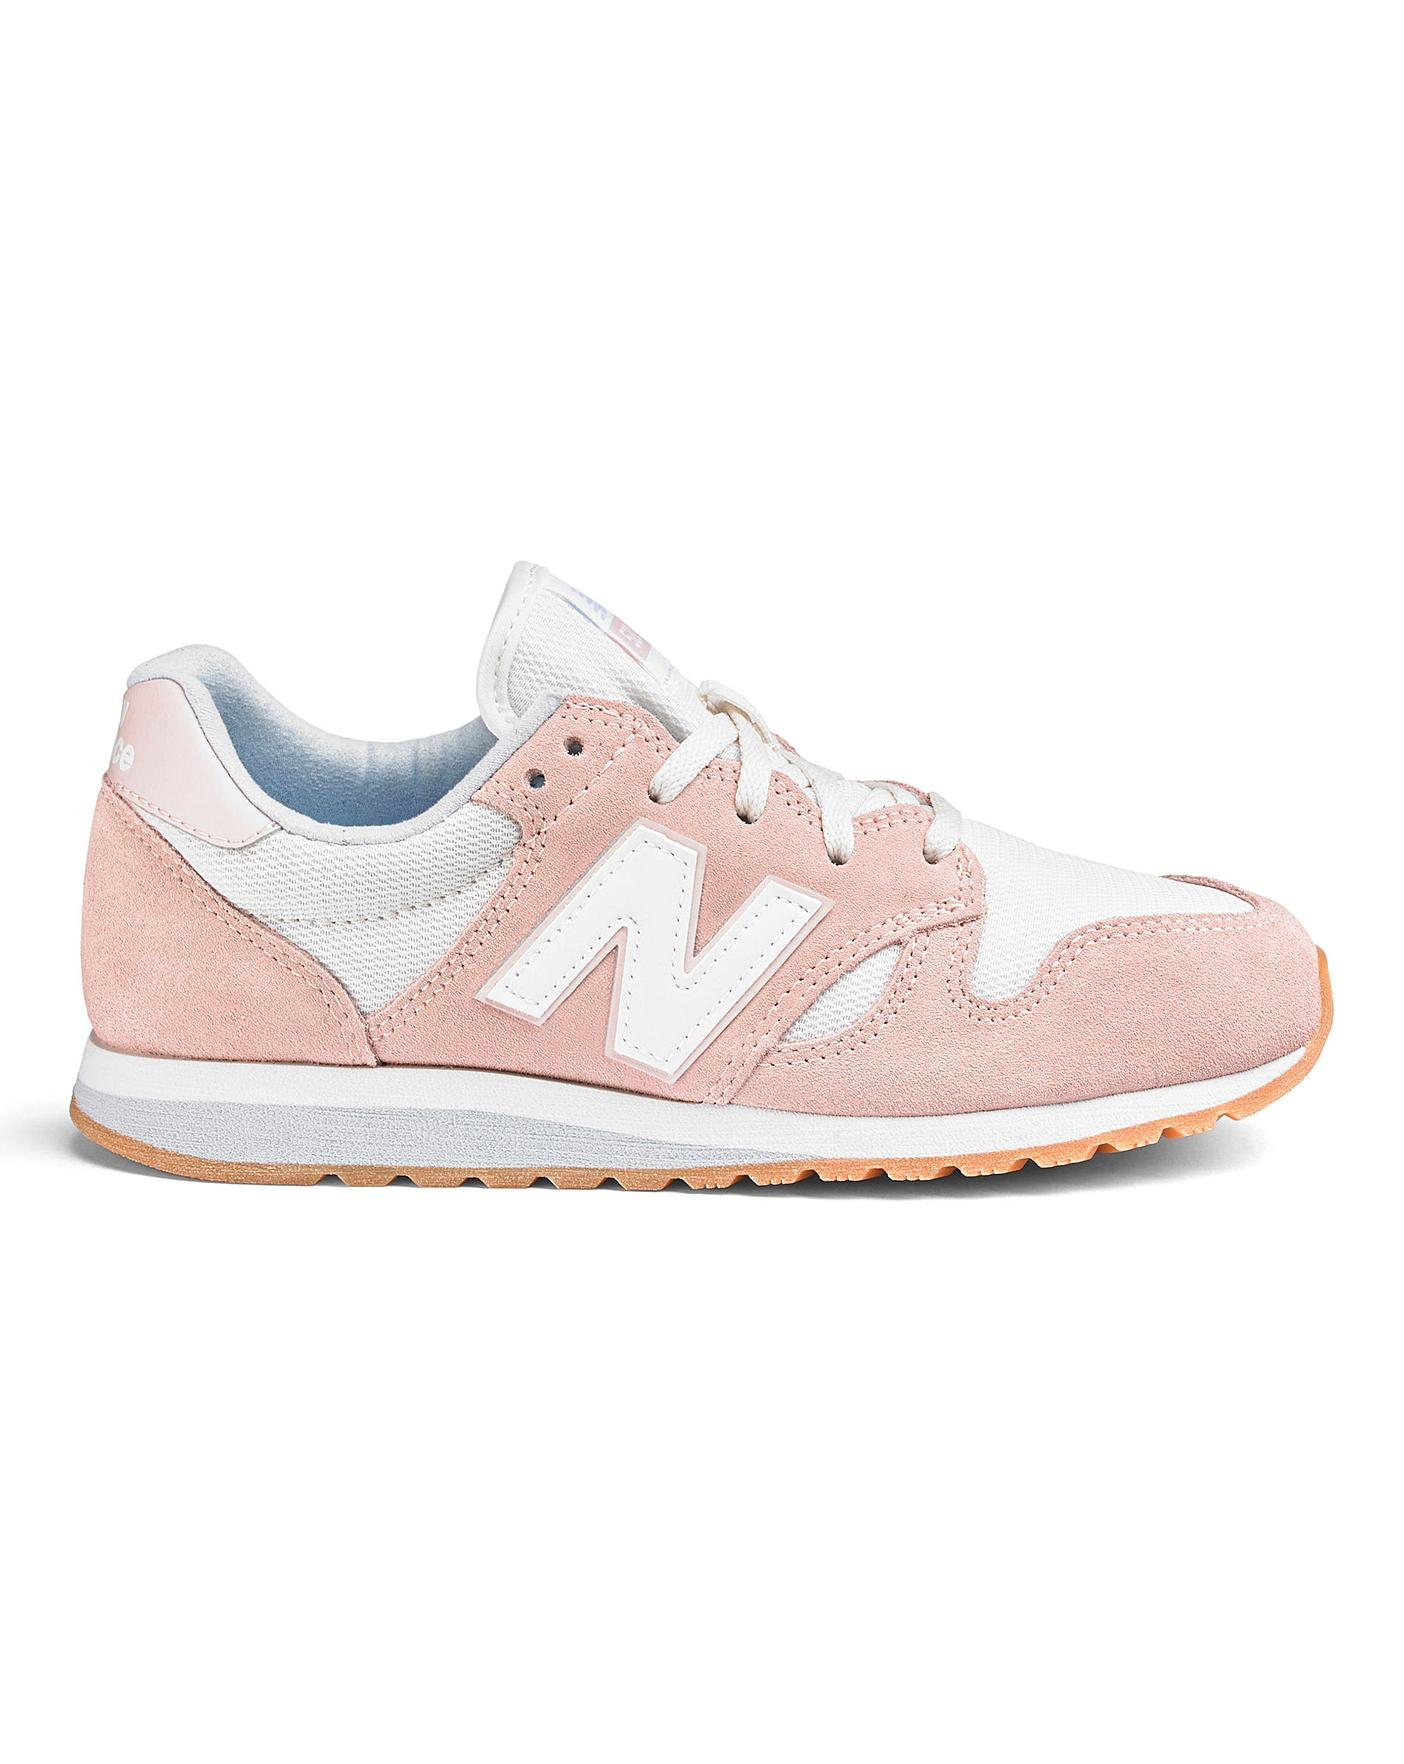 New Balance 520 Trainers   Simply Be